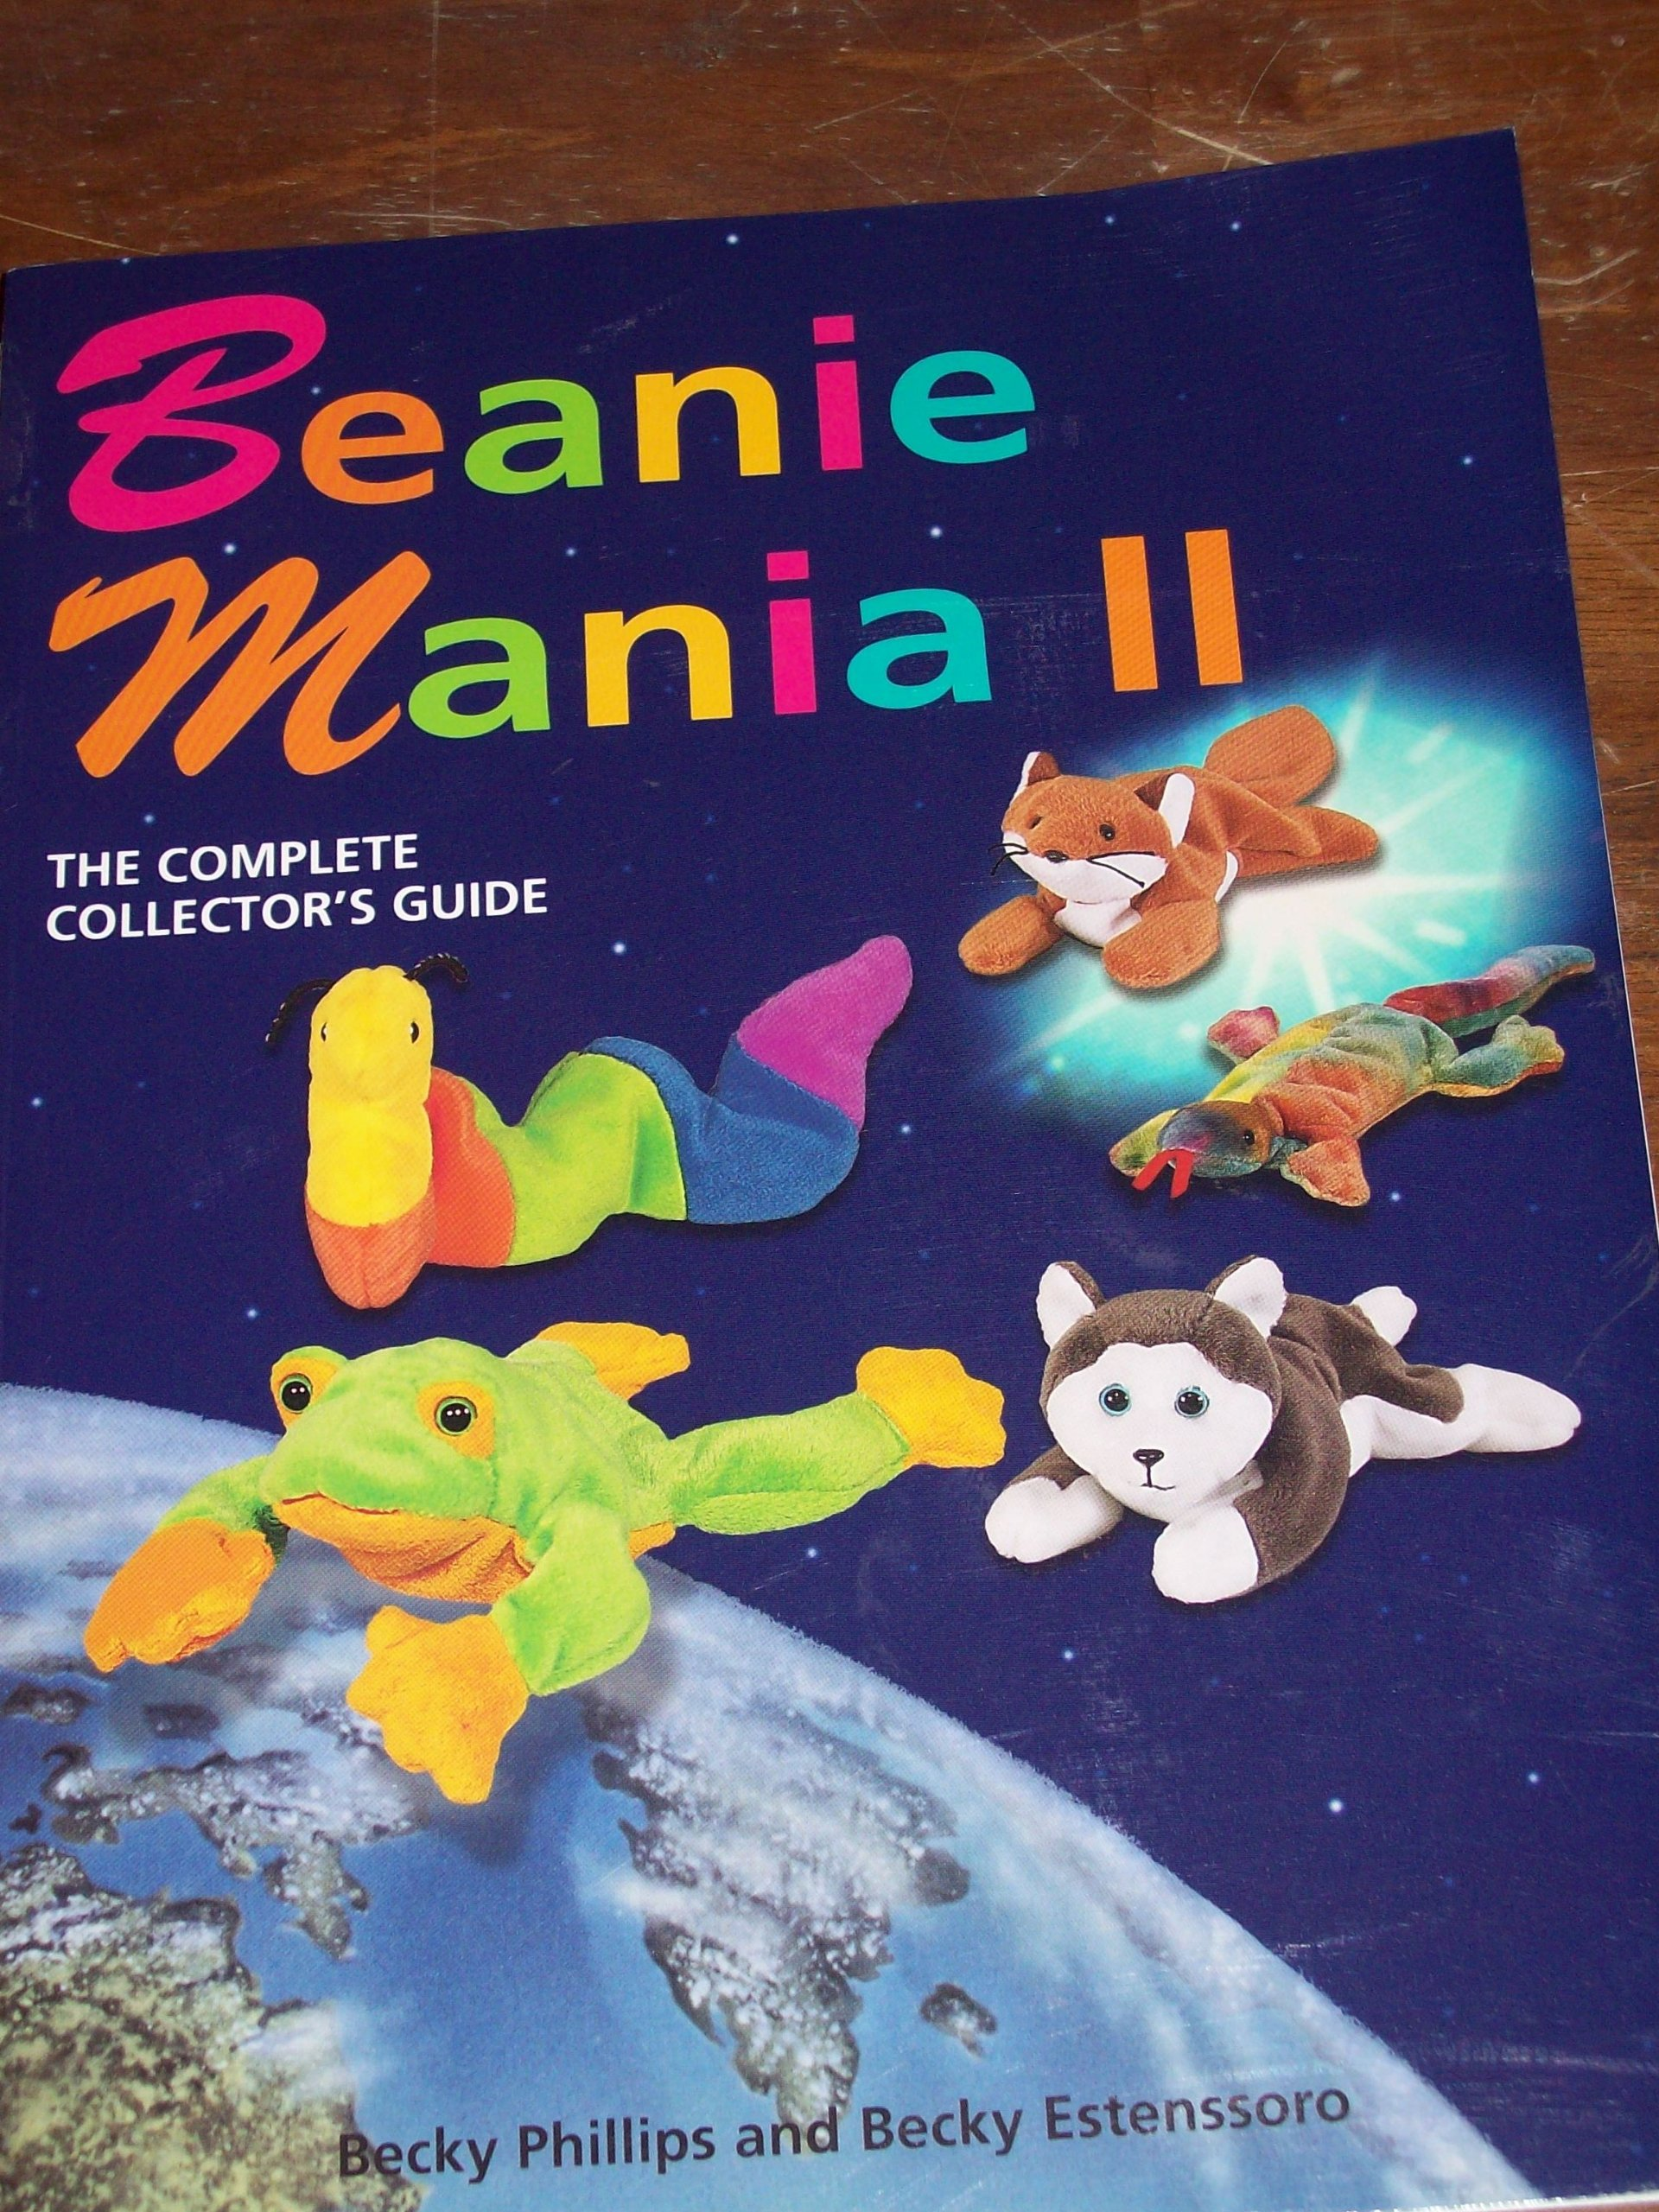 Beanie Mania II: The Complete Collector's Guide